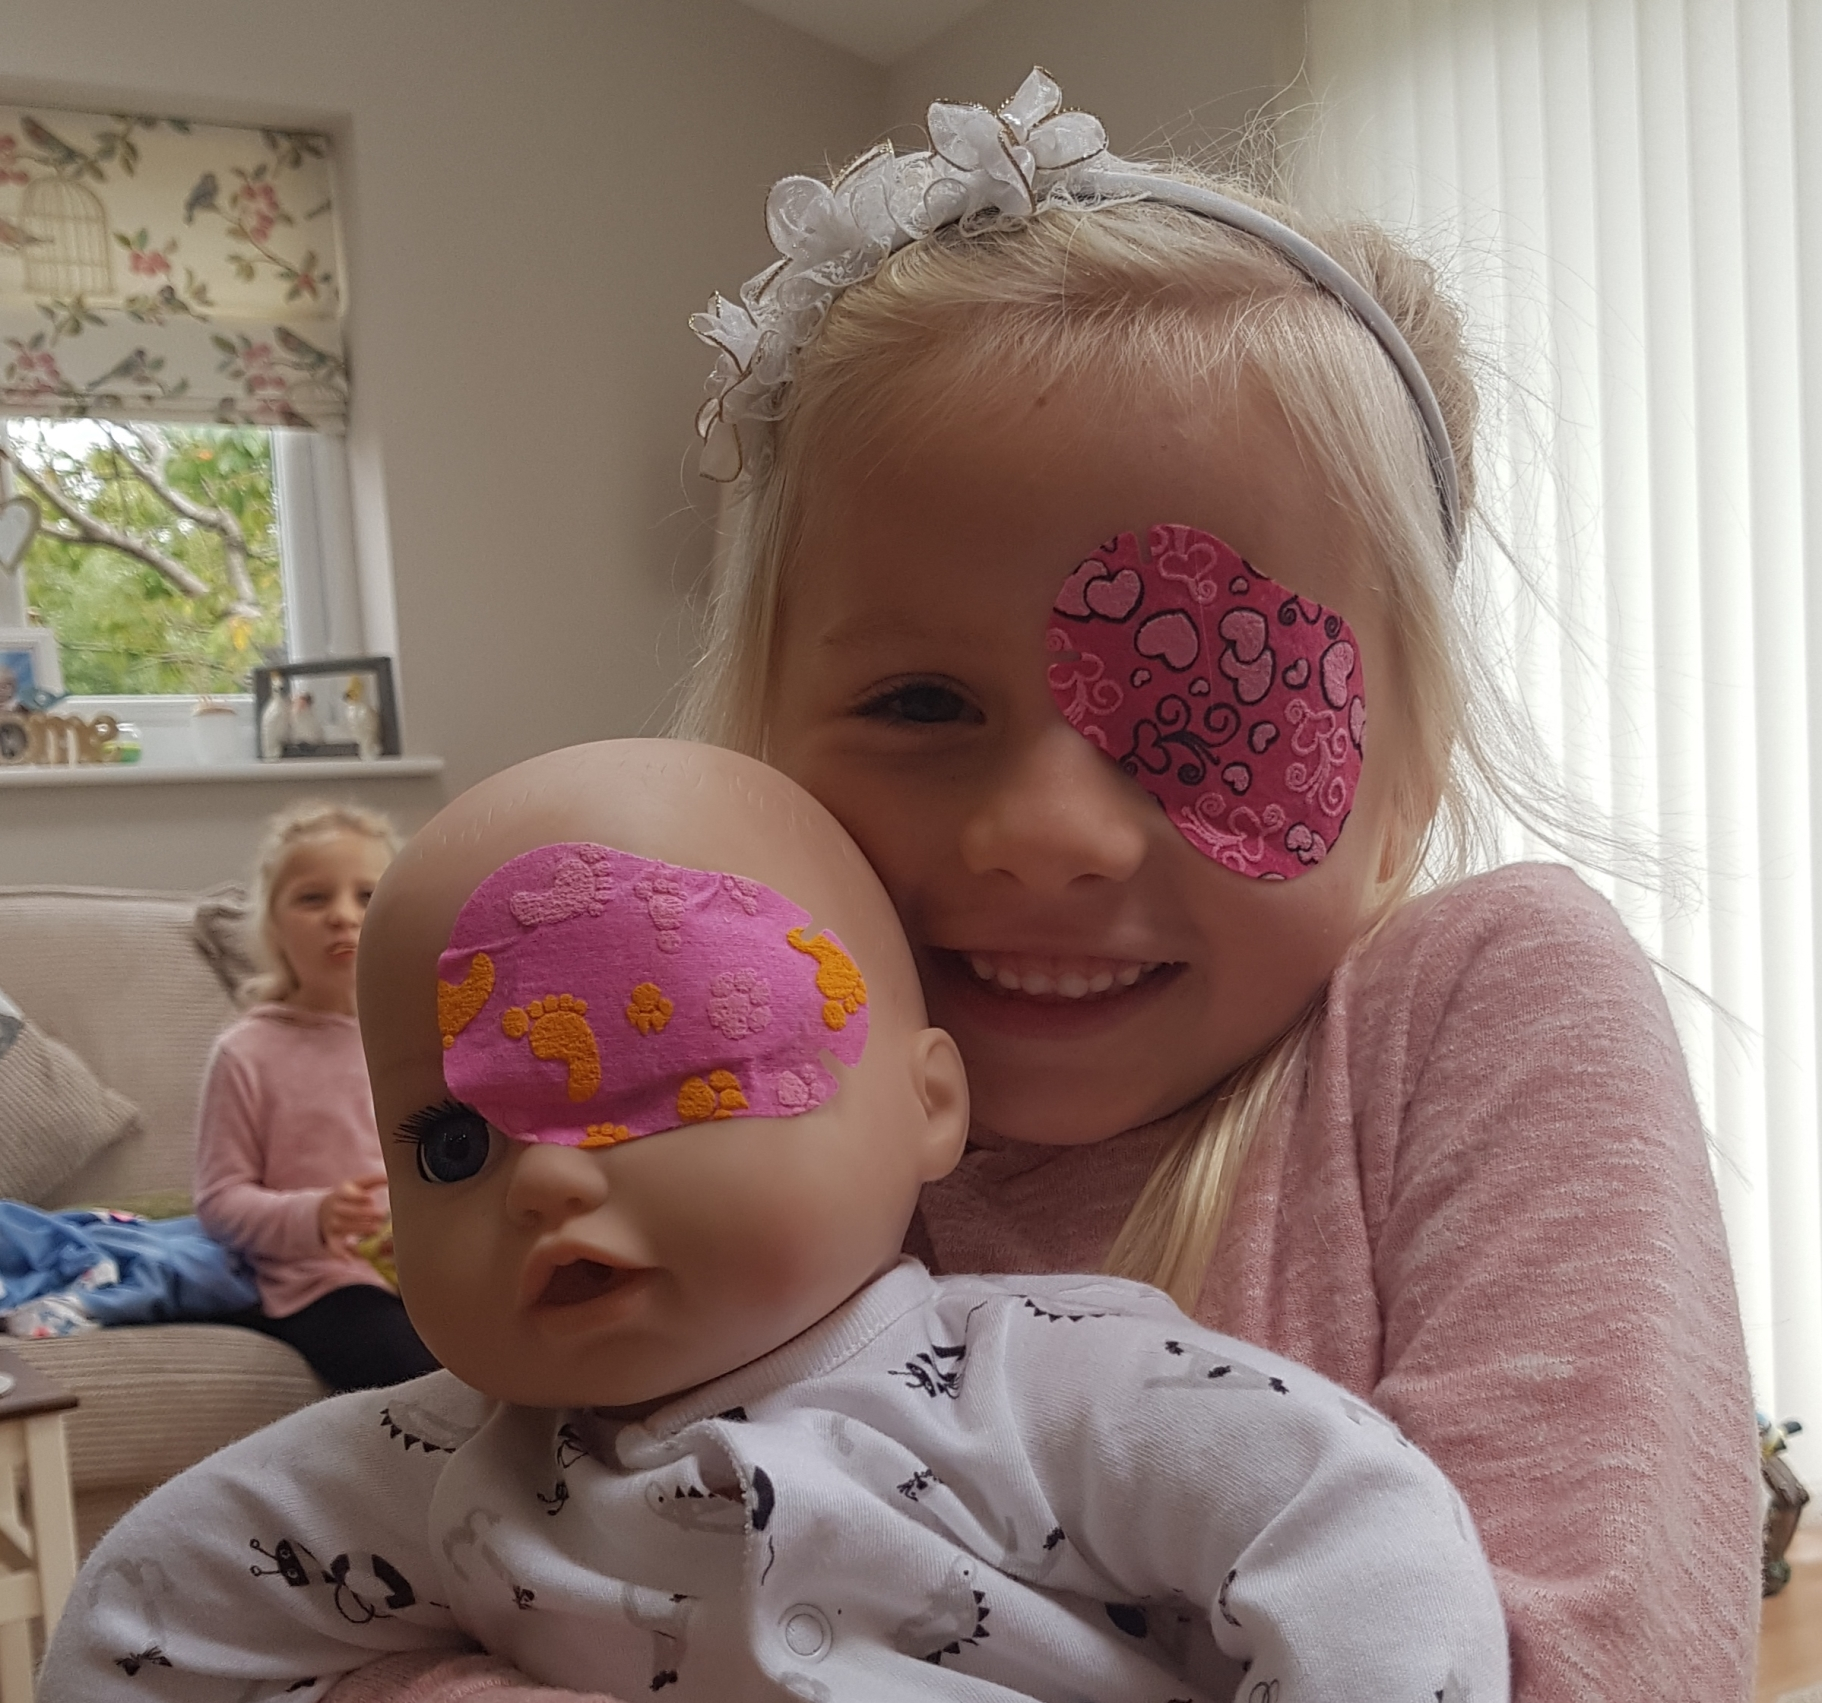 Patient of Manchester Royal Eye Hospital Jess and her doll with matching eye patches